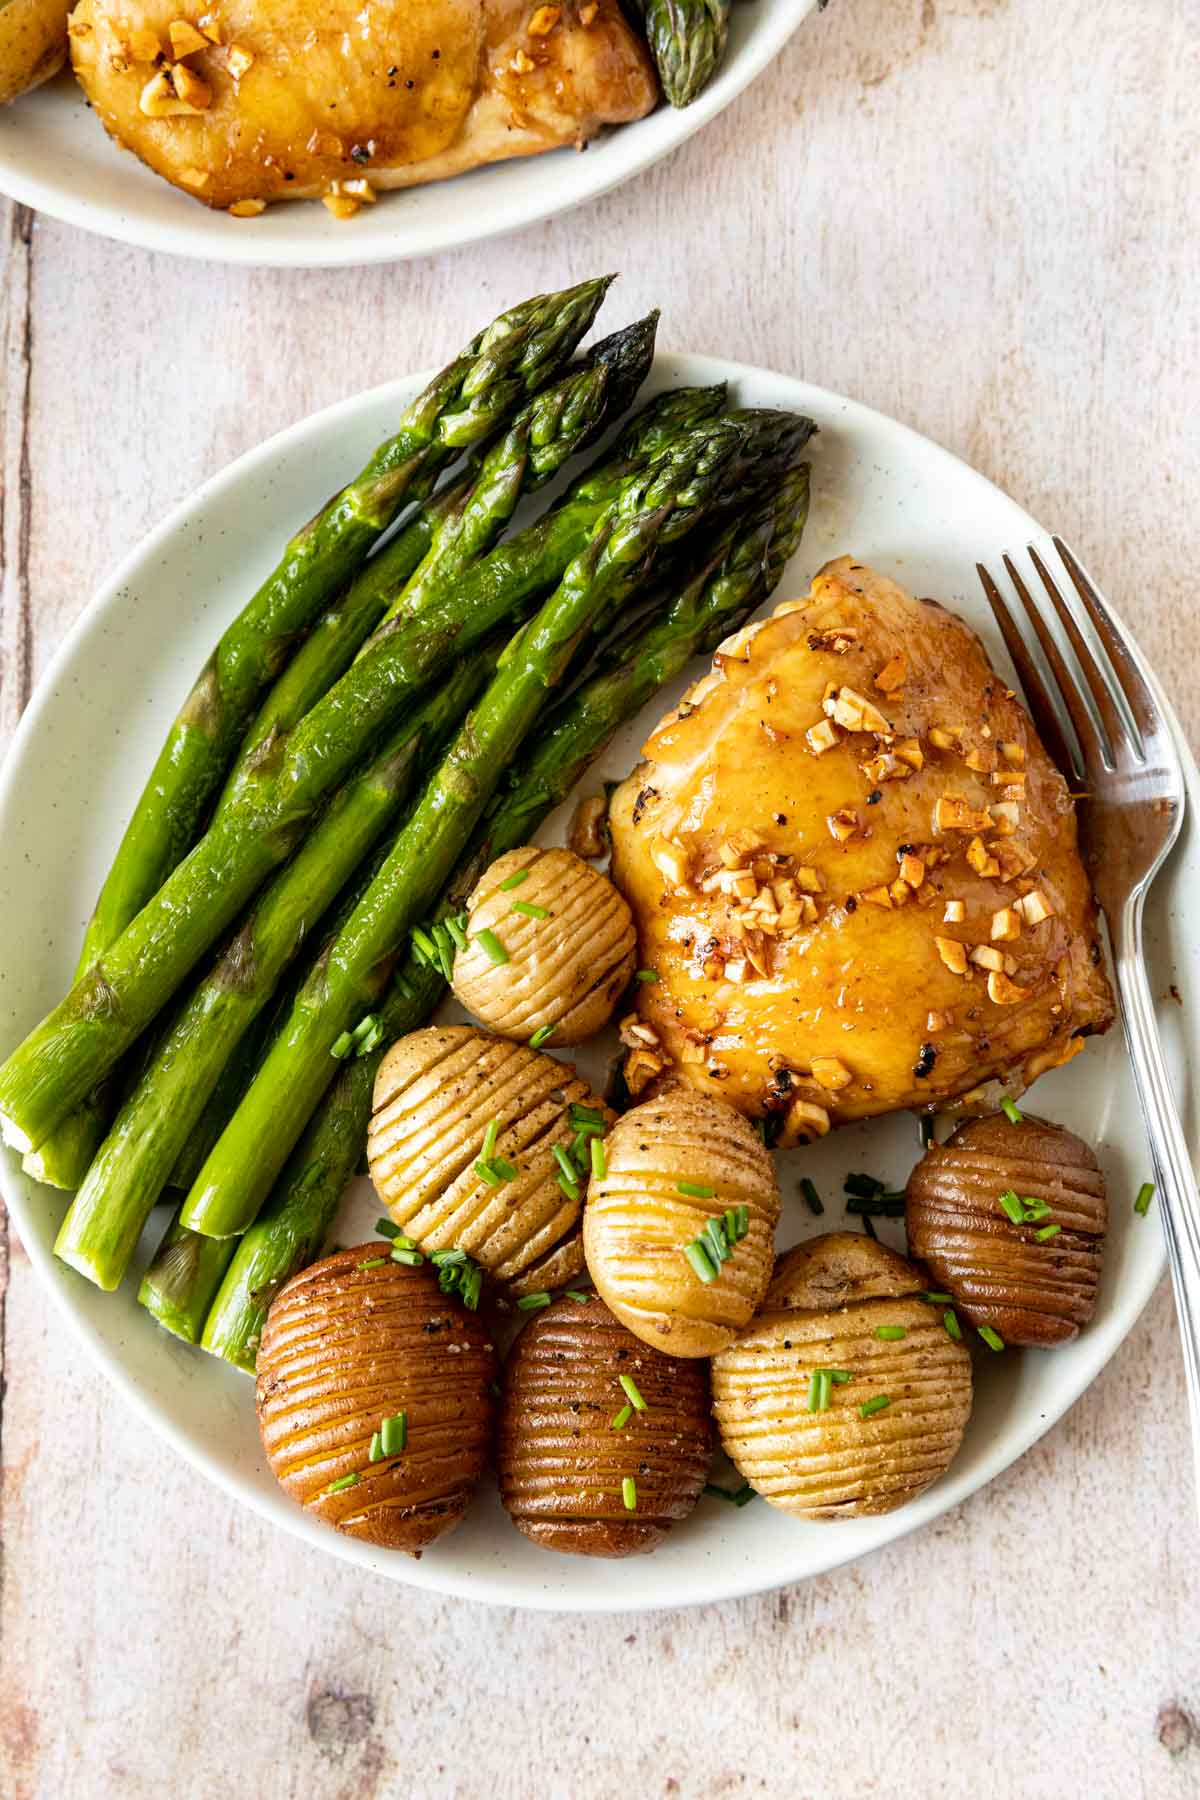 Roasted Garlic Chicken on plate with asparagus and hassel-beck potatoes